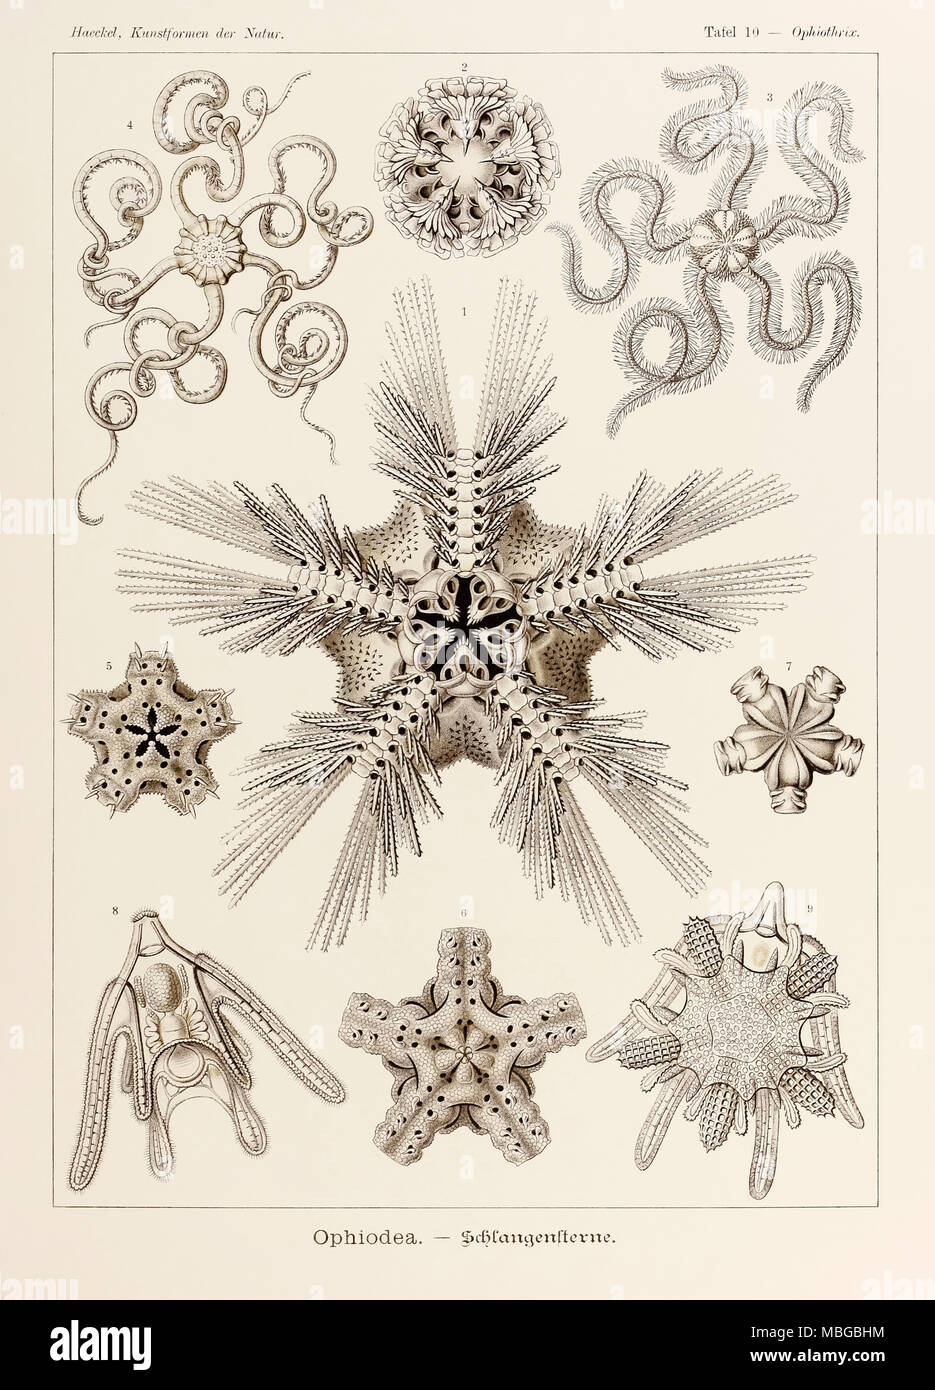 Plate 10 Ophiothrix Ophiodea from 'Kunstformen der Natur' (Art Forms in Nature) illustrated by Ernst Haeckel (1834-1919). See more information below. Stock Photo